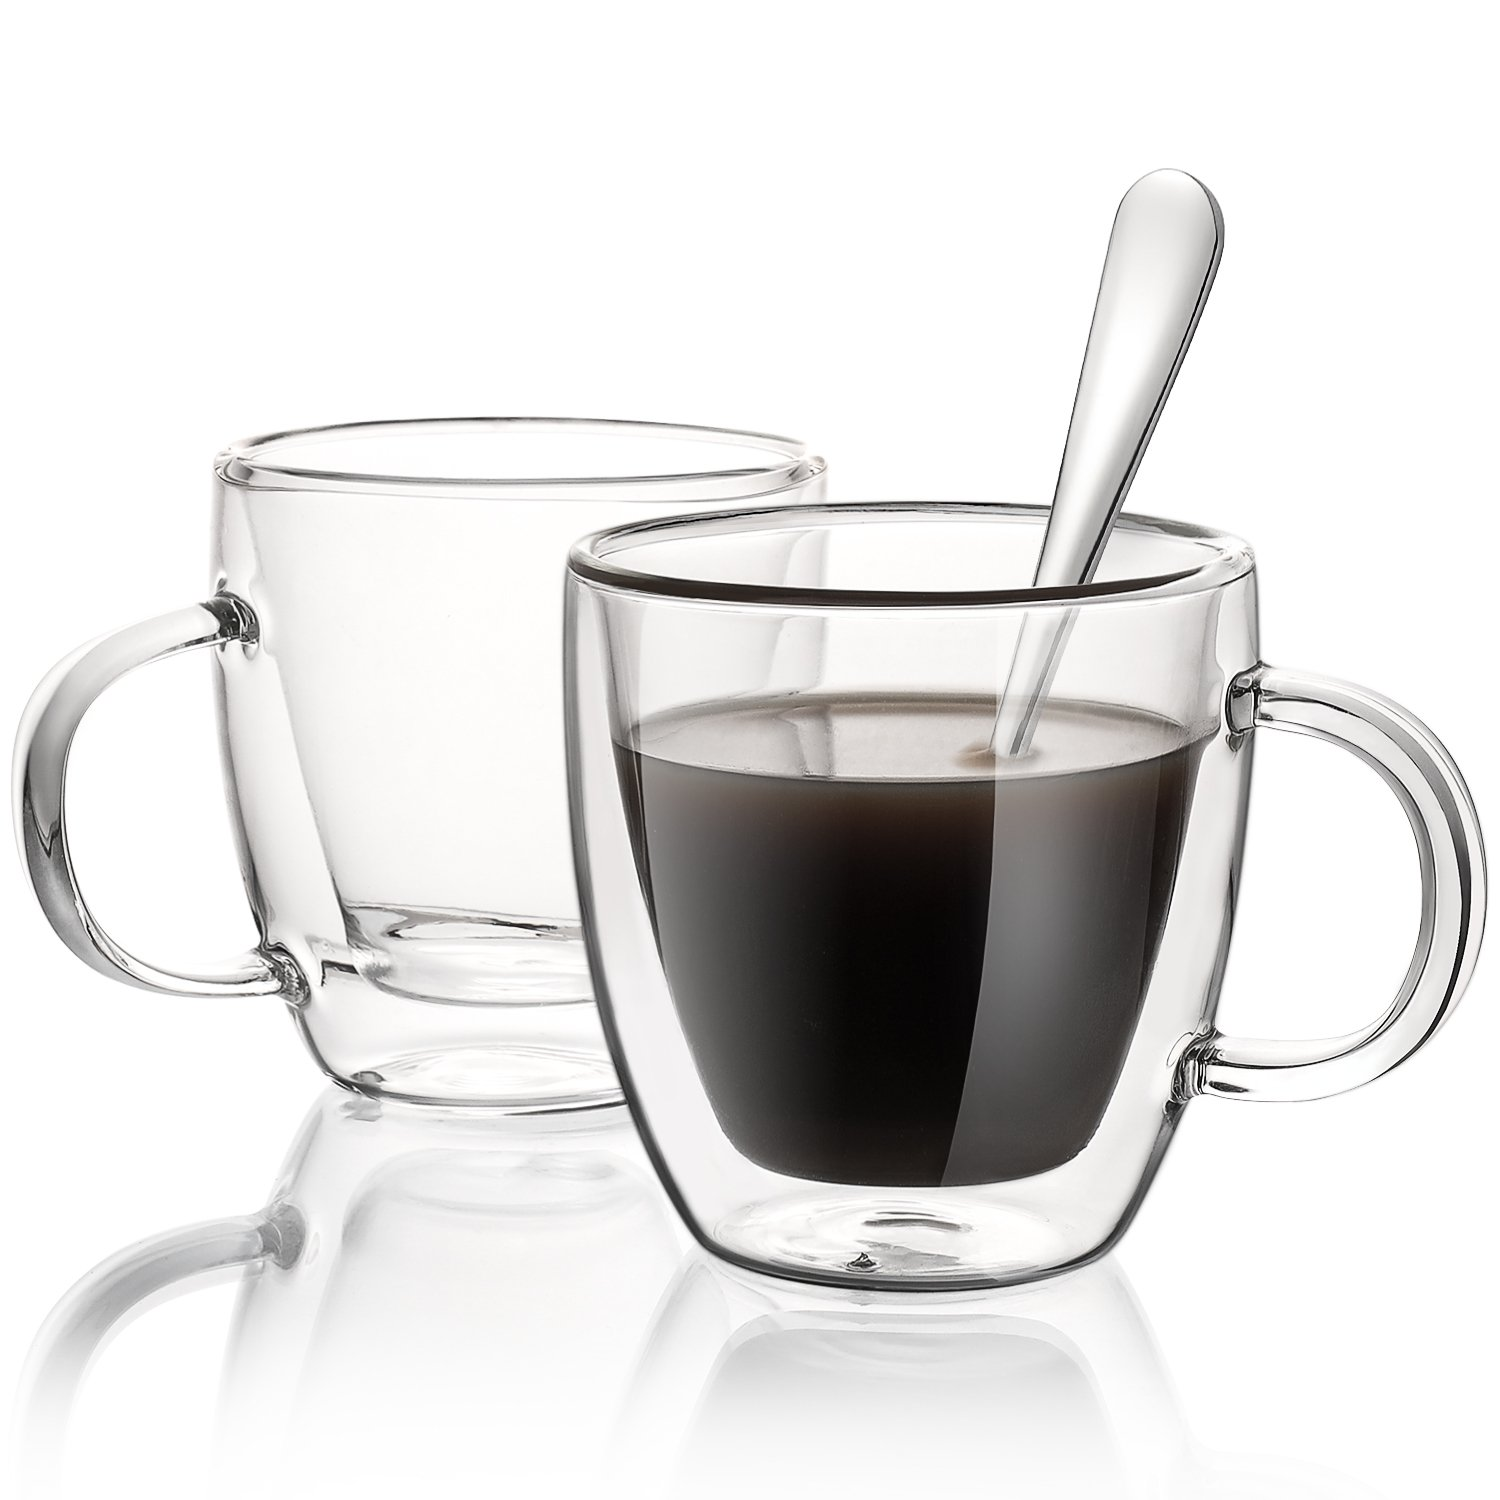 Aozita Glasses Espresso Mugs with Spoons, 5.4-Ounce Cappuccino/Latte Cups, Double Walled Thermo Espresso Cups, Set of 2